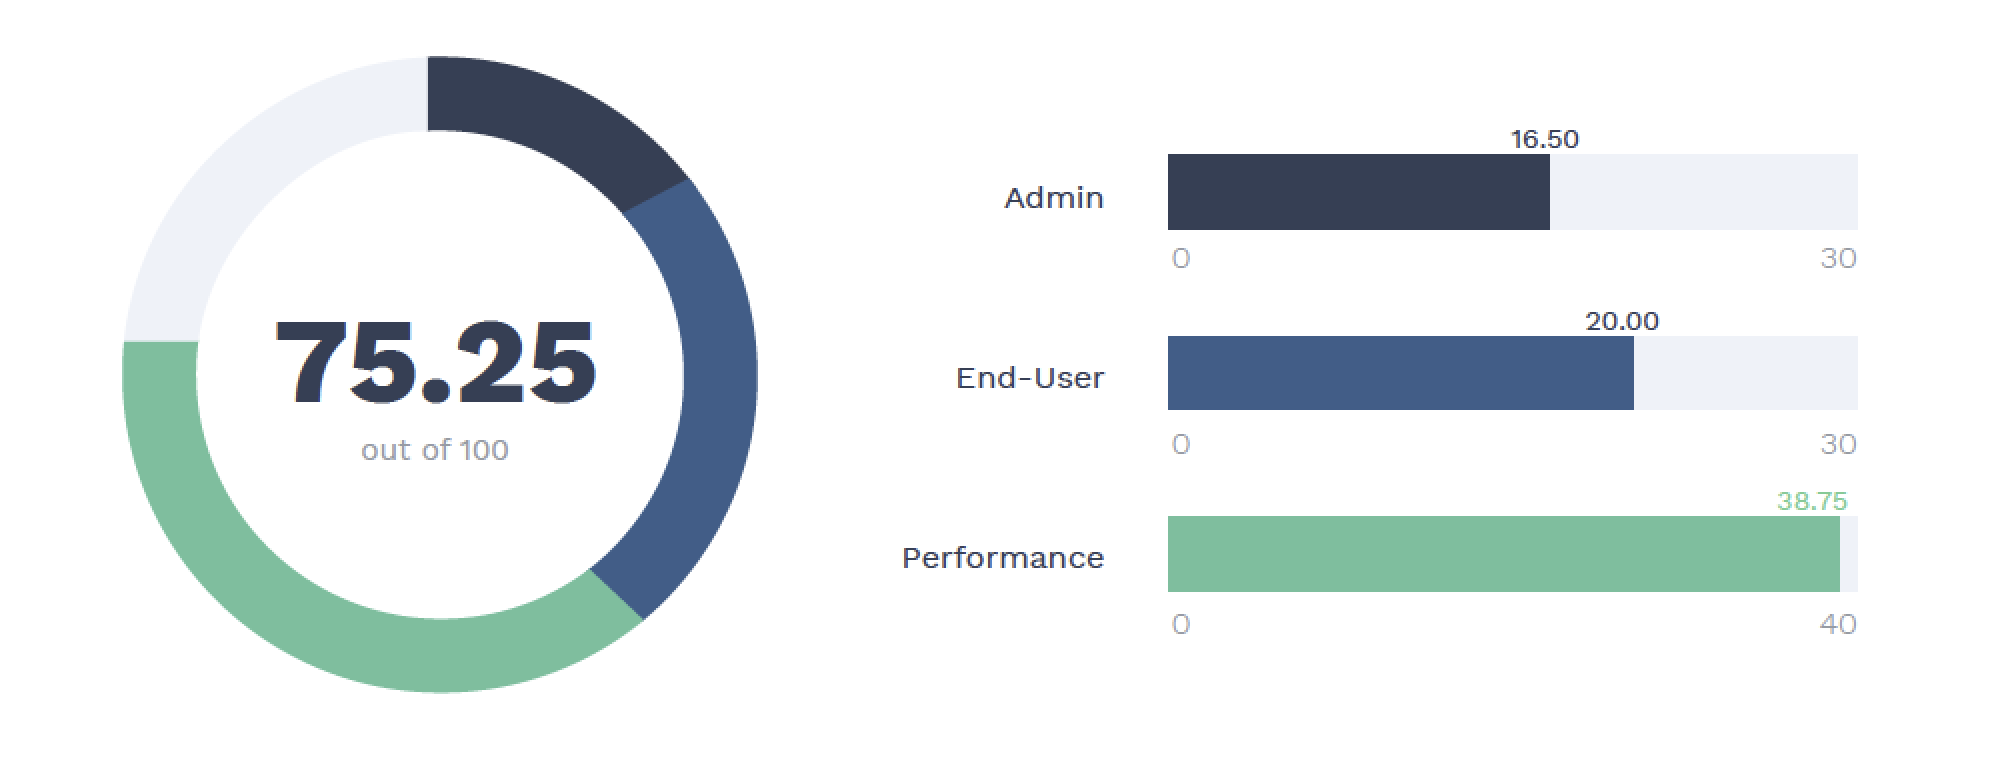 Influence Index Score: The Influence Score (IIS) measures admin and end-user activity and the overall impact on performance.